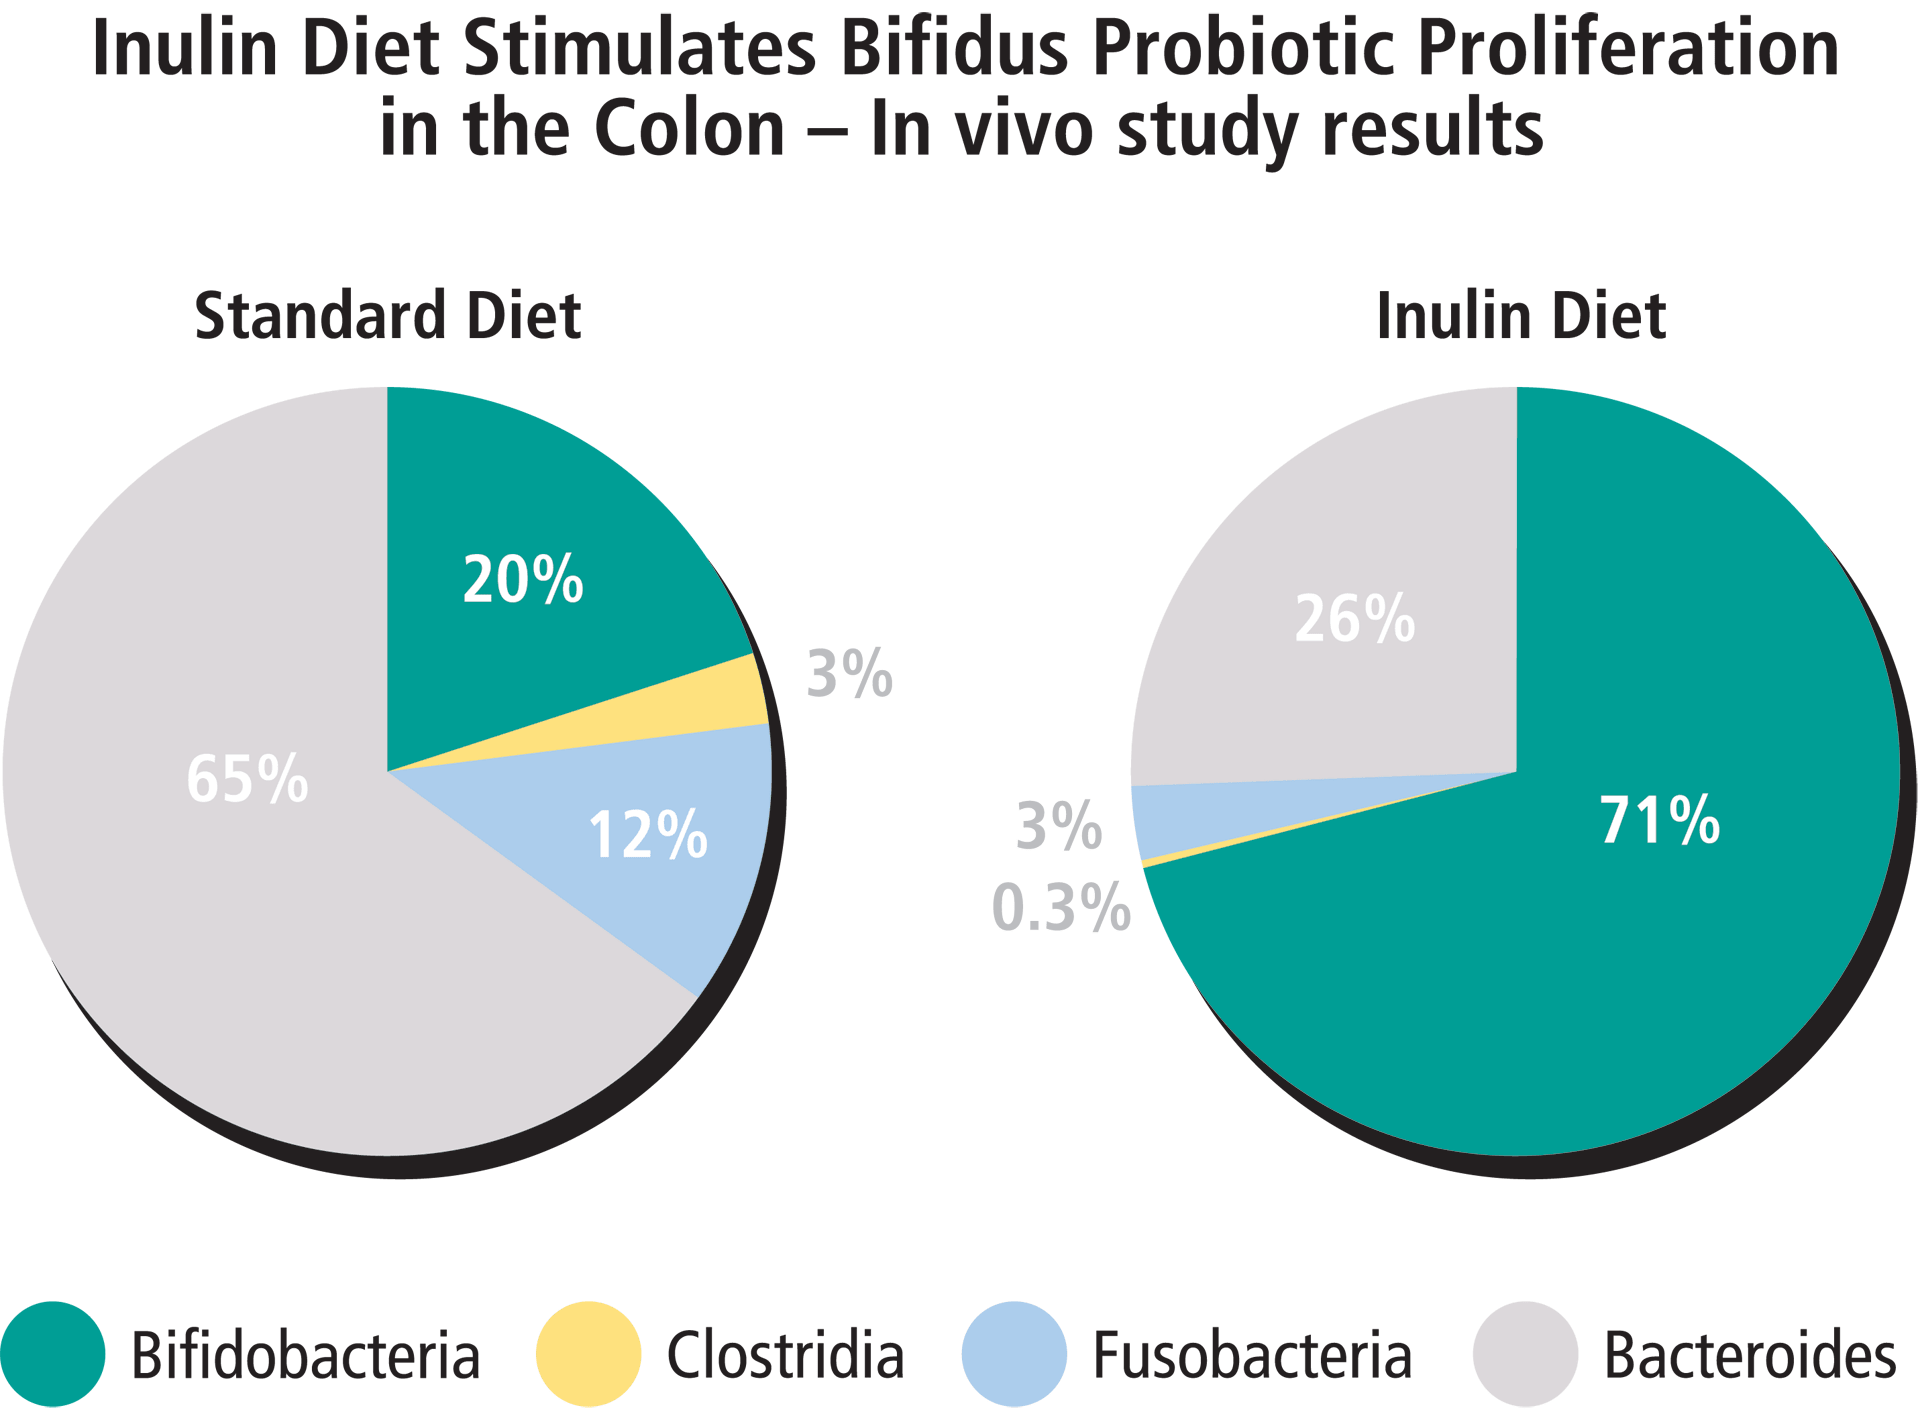 Inulin diet stimulates bifidus probiotic proliferation in the colon.